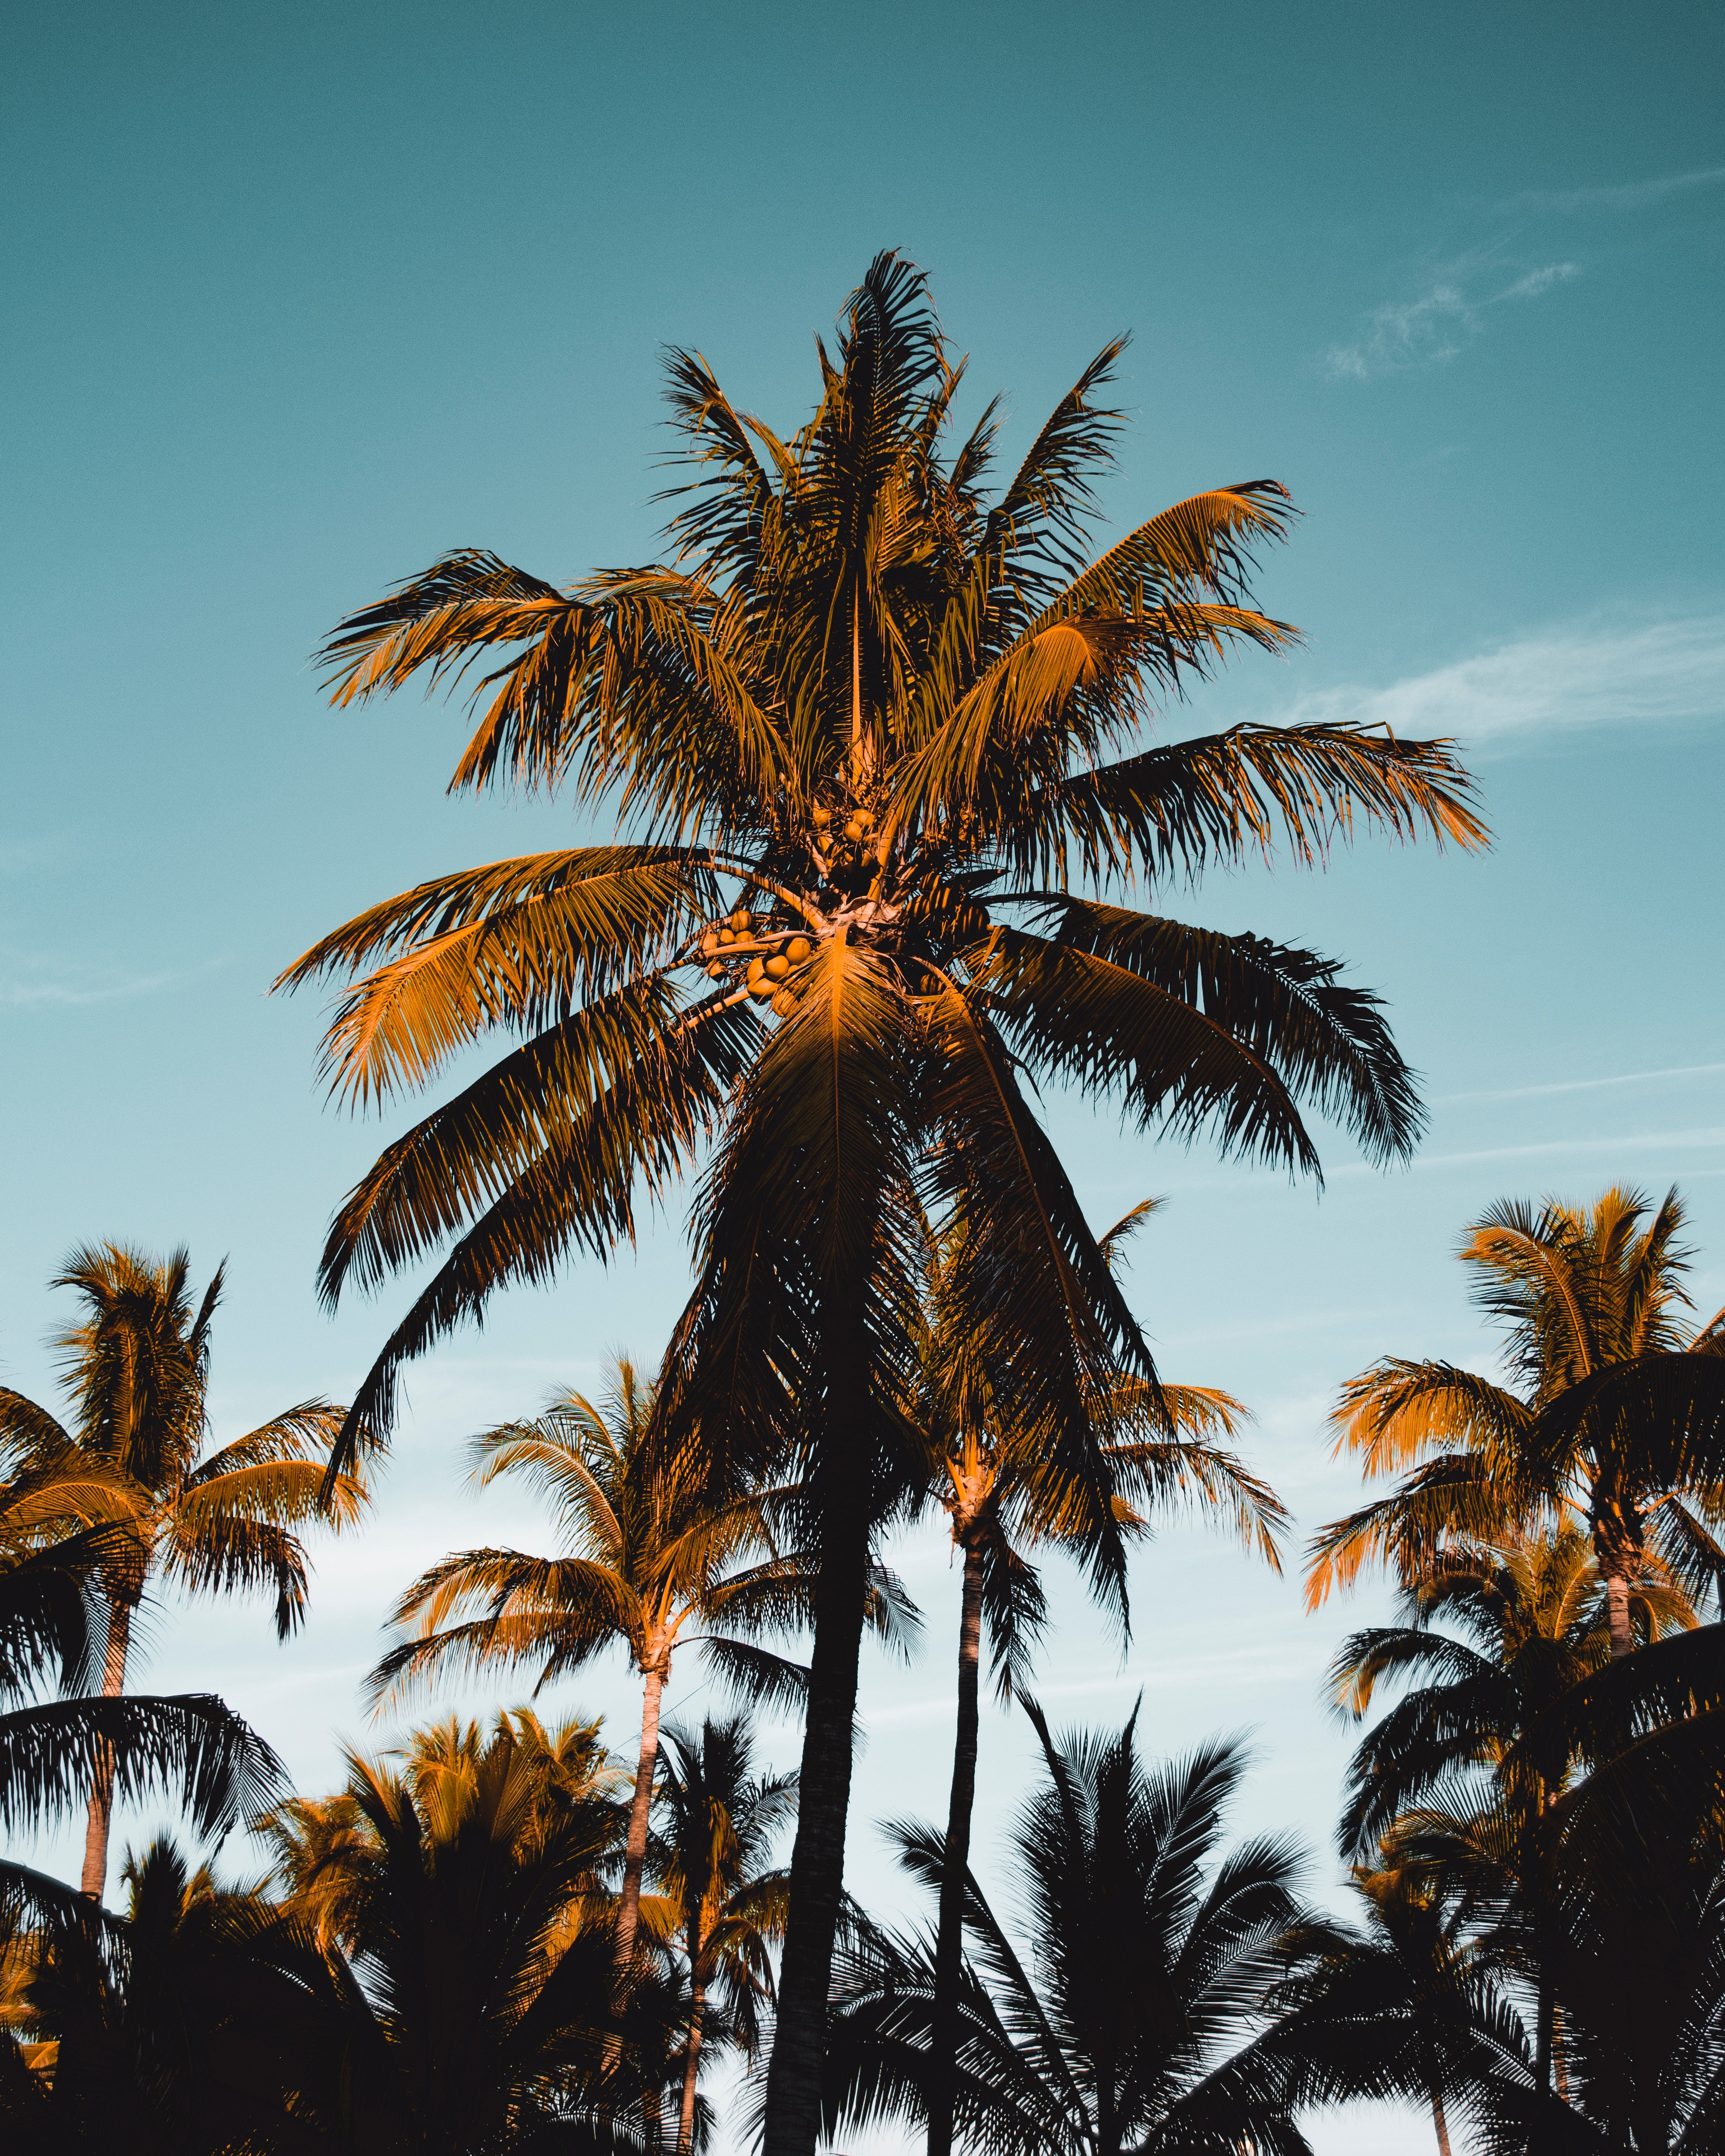 90808 download wallpaper Nature, Palm, Tropics, Branches, Foliage, Sky screensavers and pictures for free